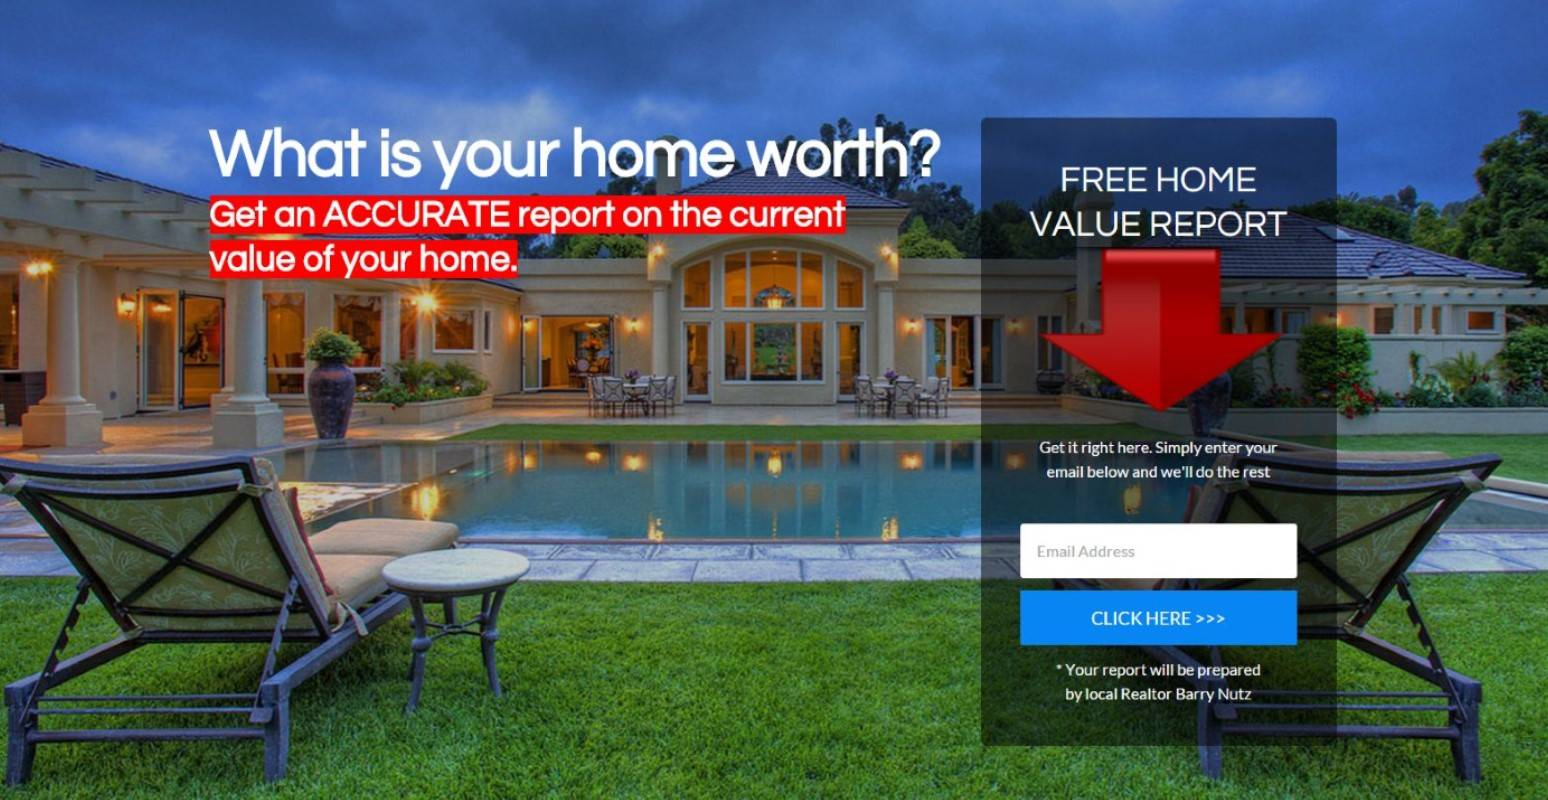 Example of home value landing page